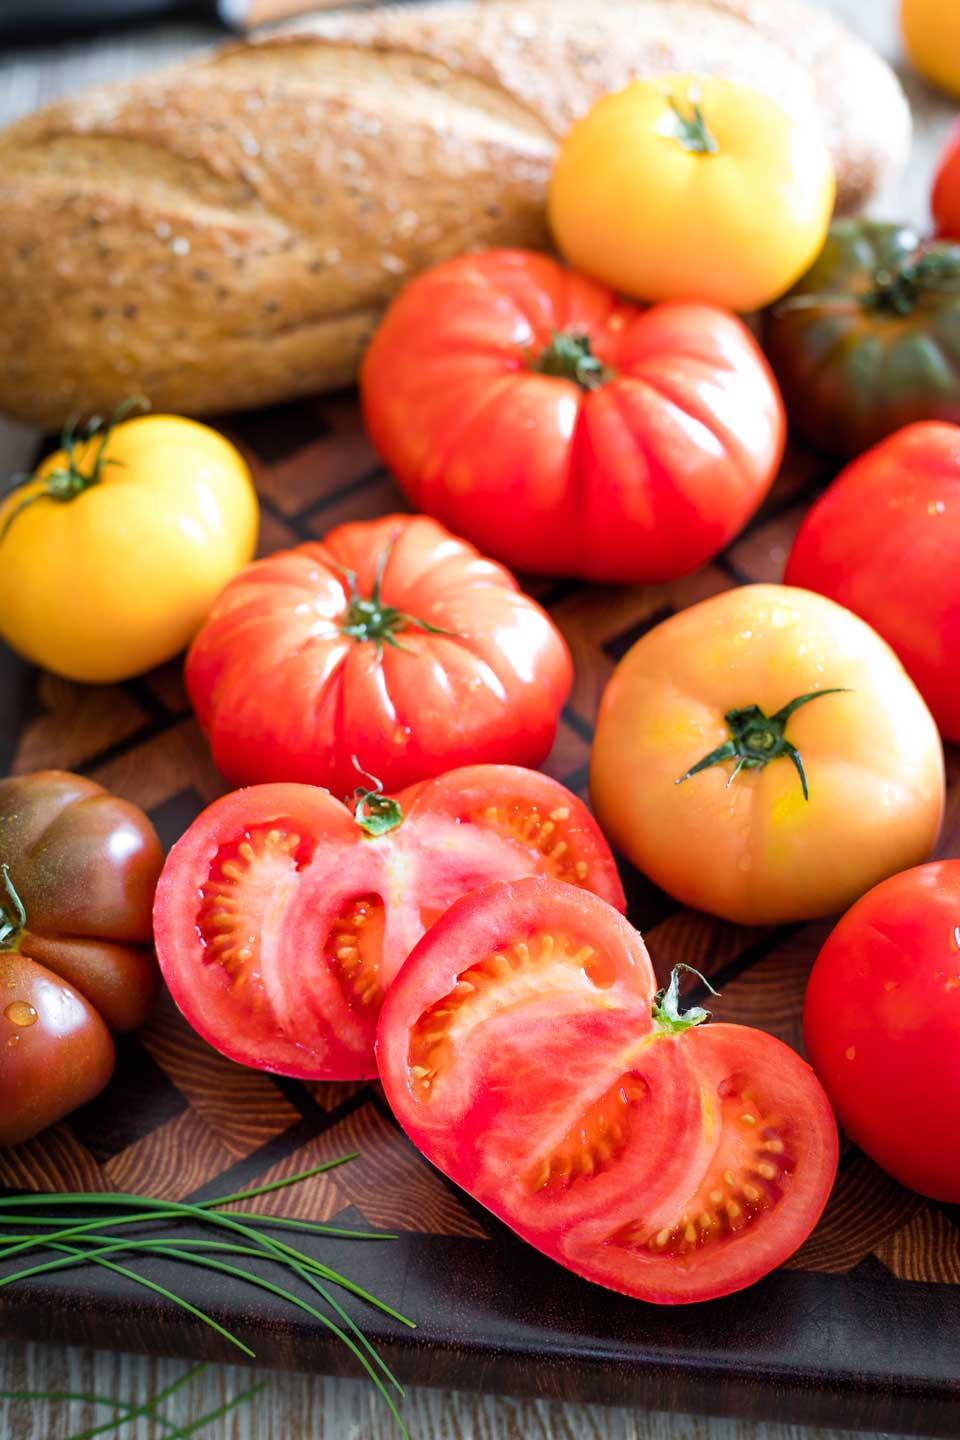 Different colors of tomatoes with one cut open, plus a grainy loaf of bread in background